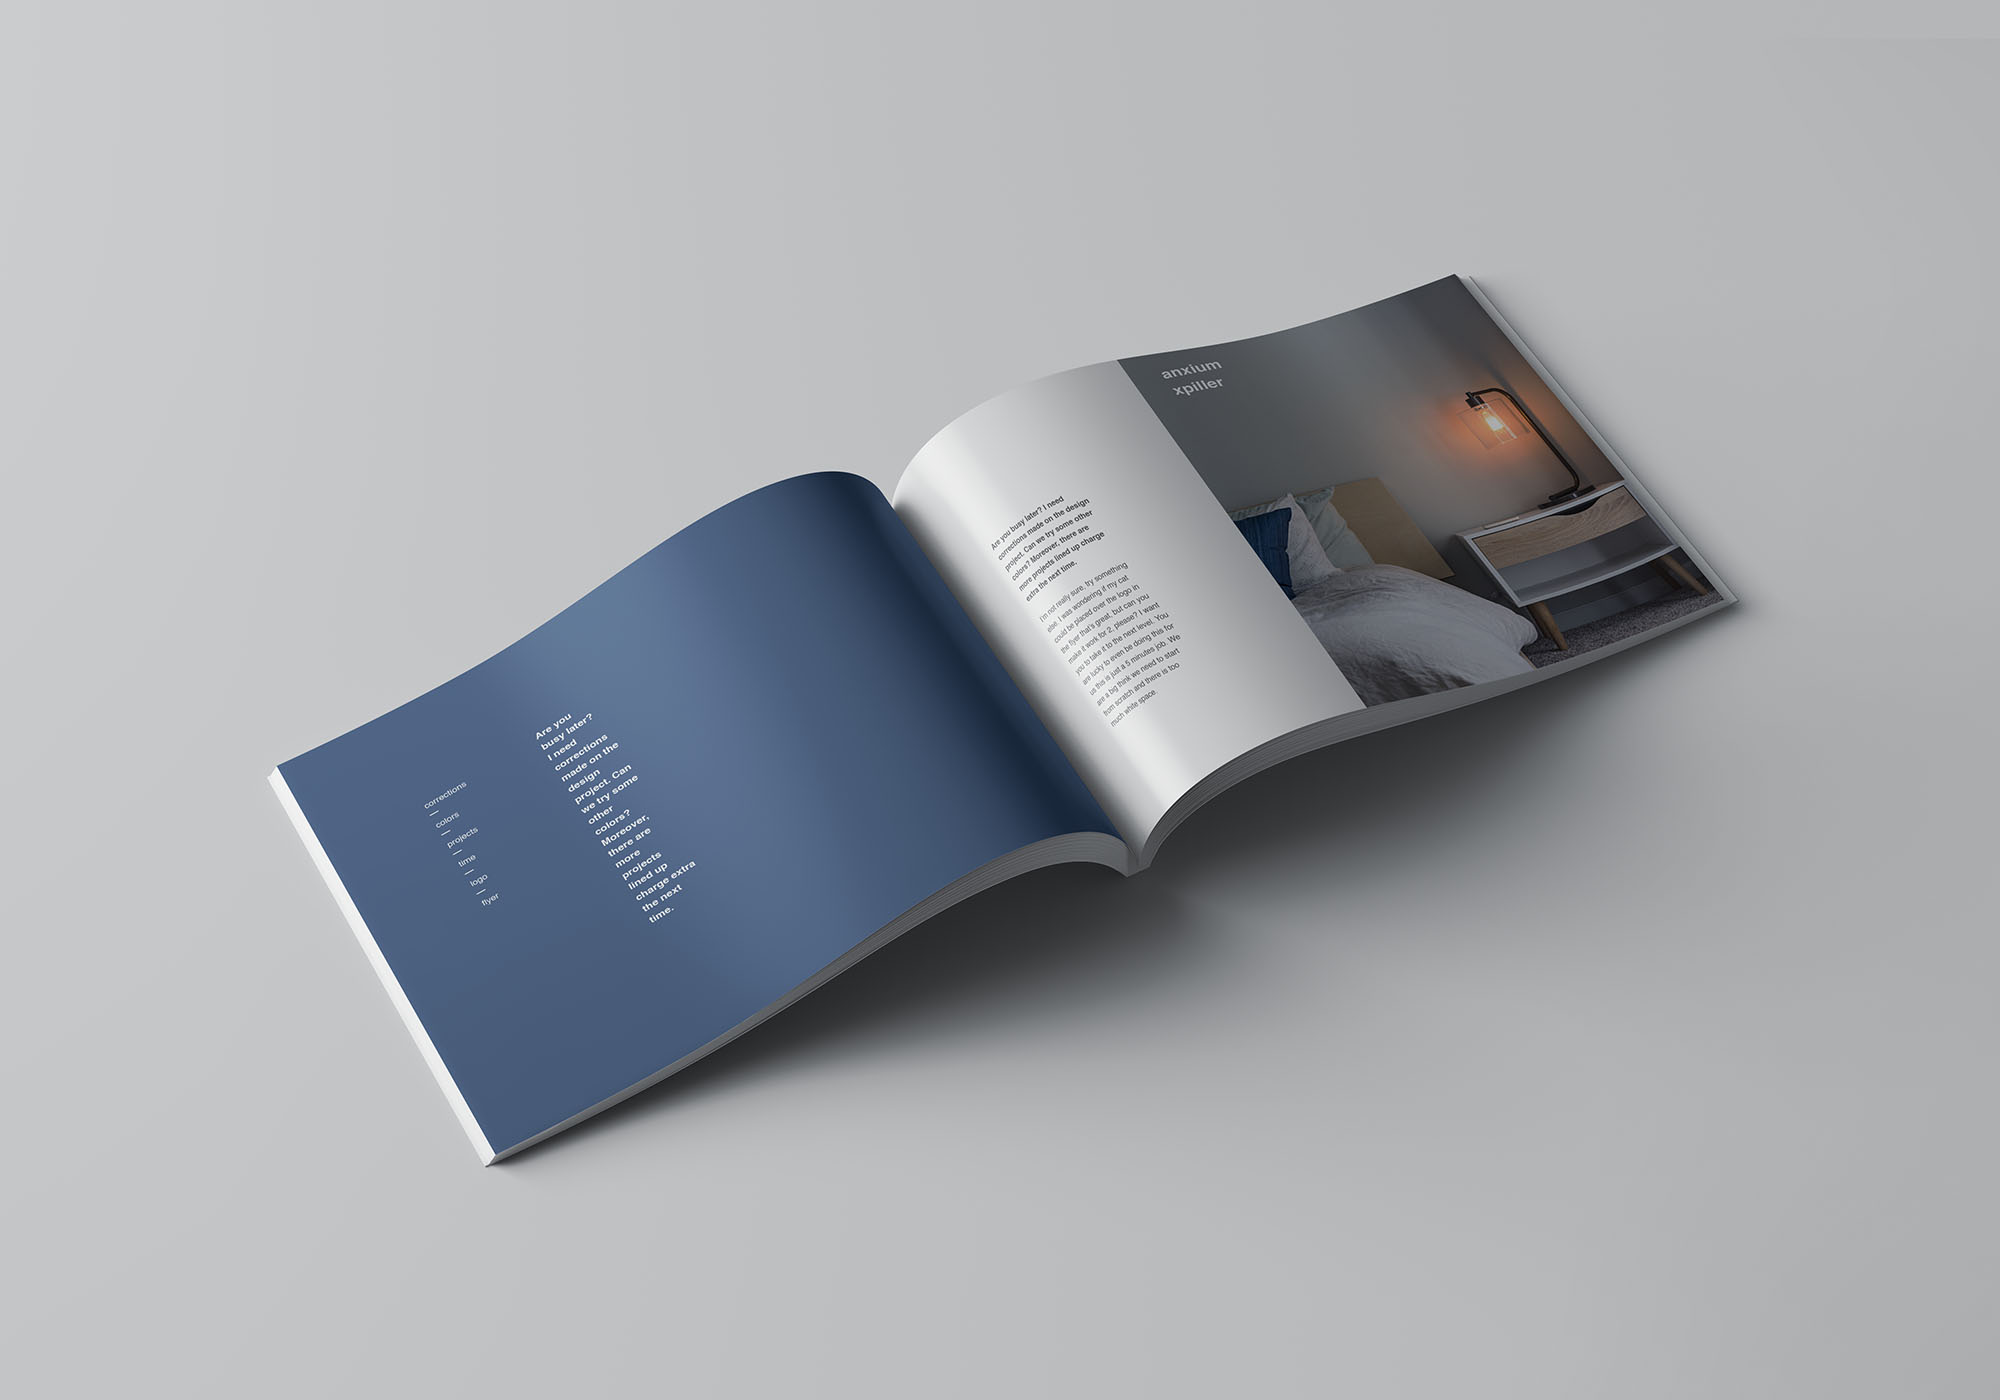 A4 Landscape Perfect Binding Brochure Mockup 4